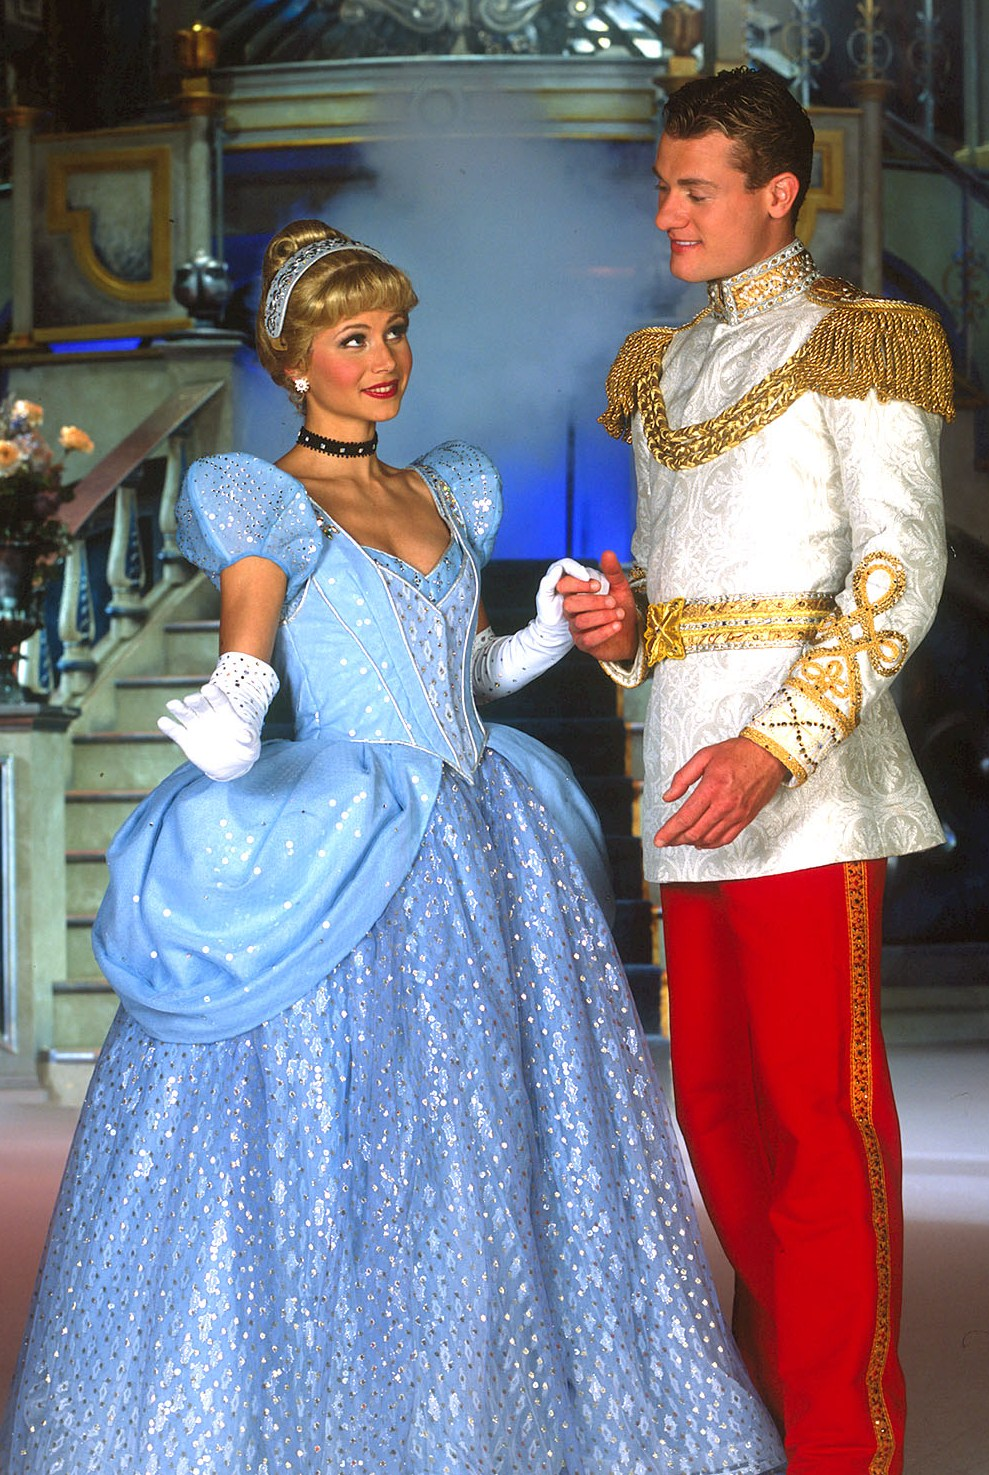 https://i1.wp.com/images5.fanpop.com/image/photos/28500000/Cinderella-and-Charming-cinderella-and-prince-charming-28505817-989-1475.jpg